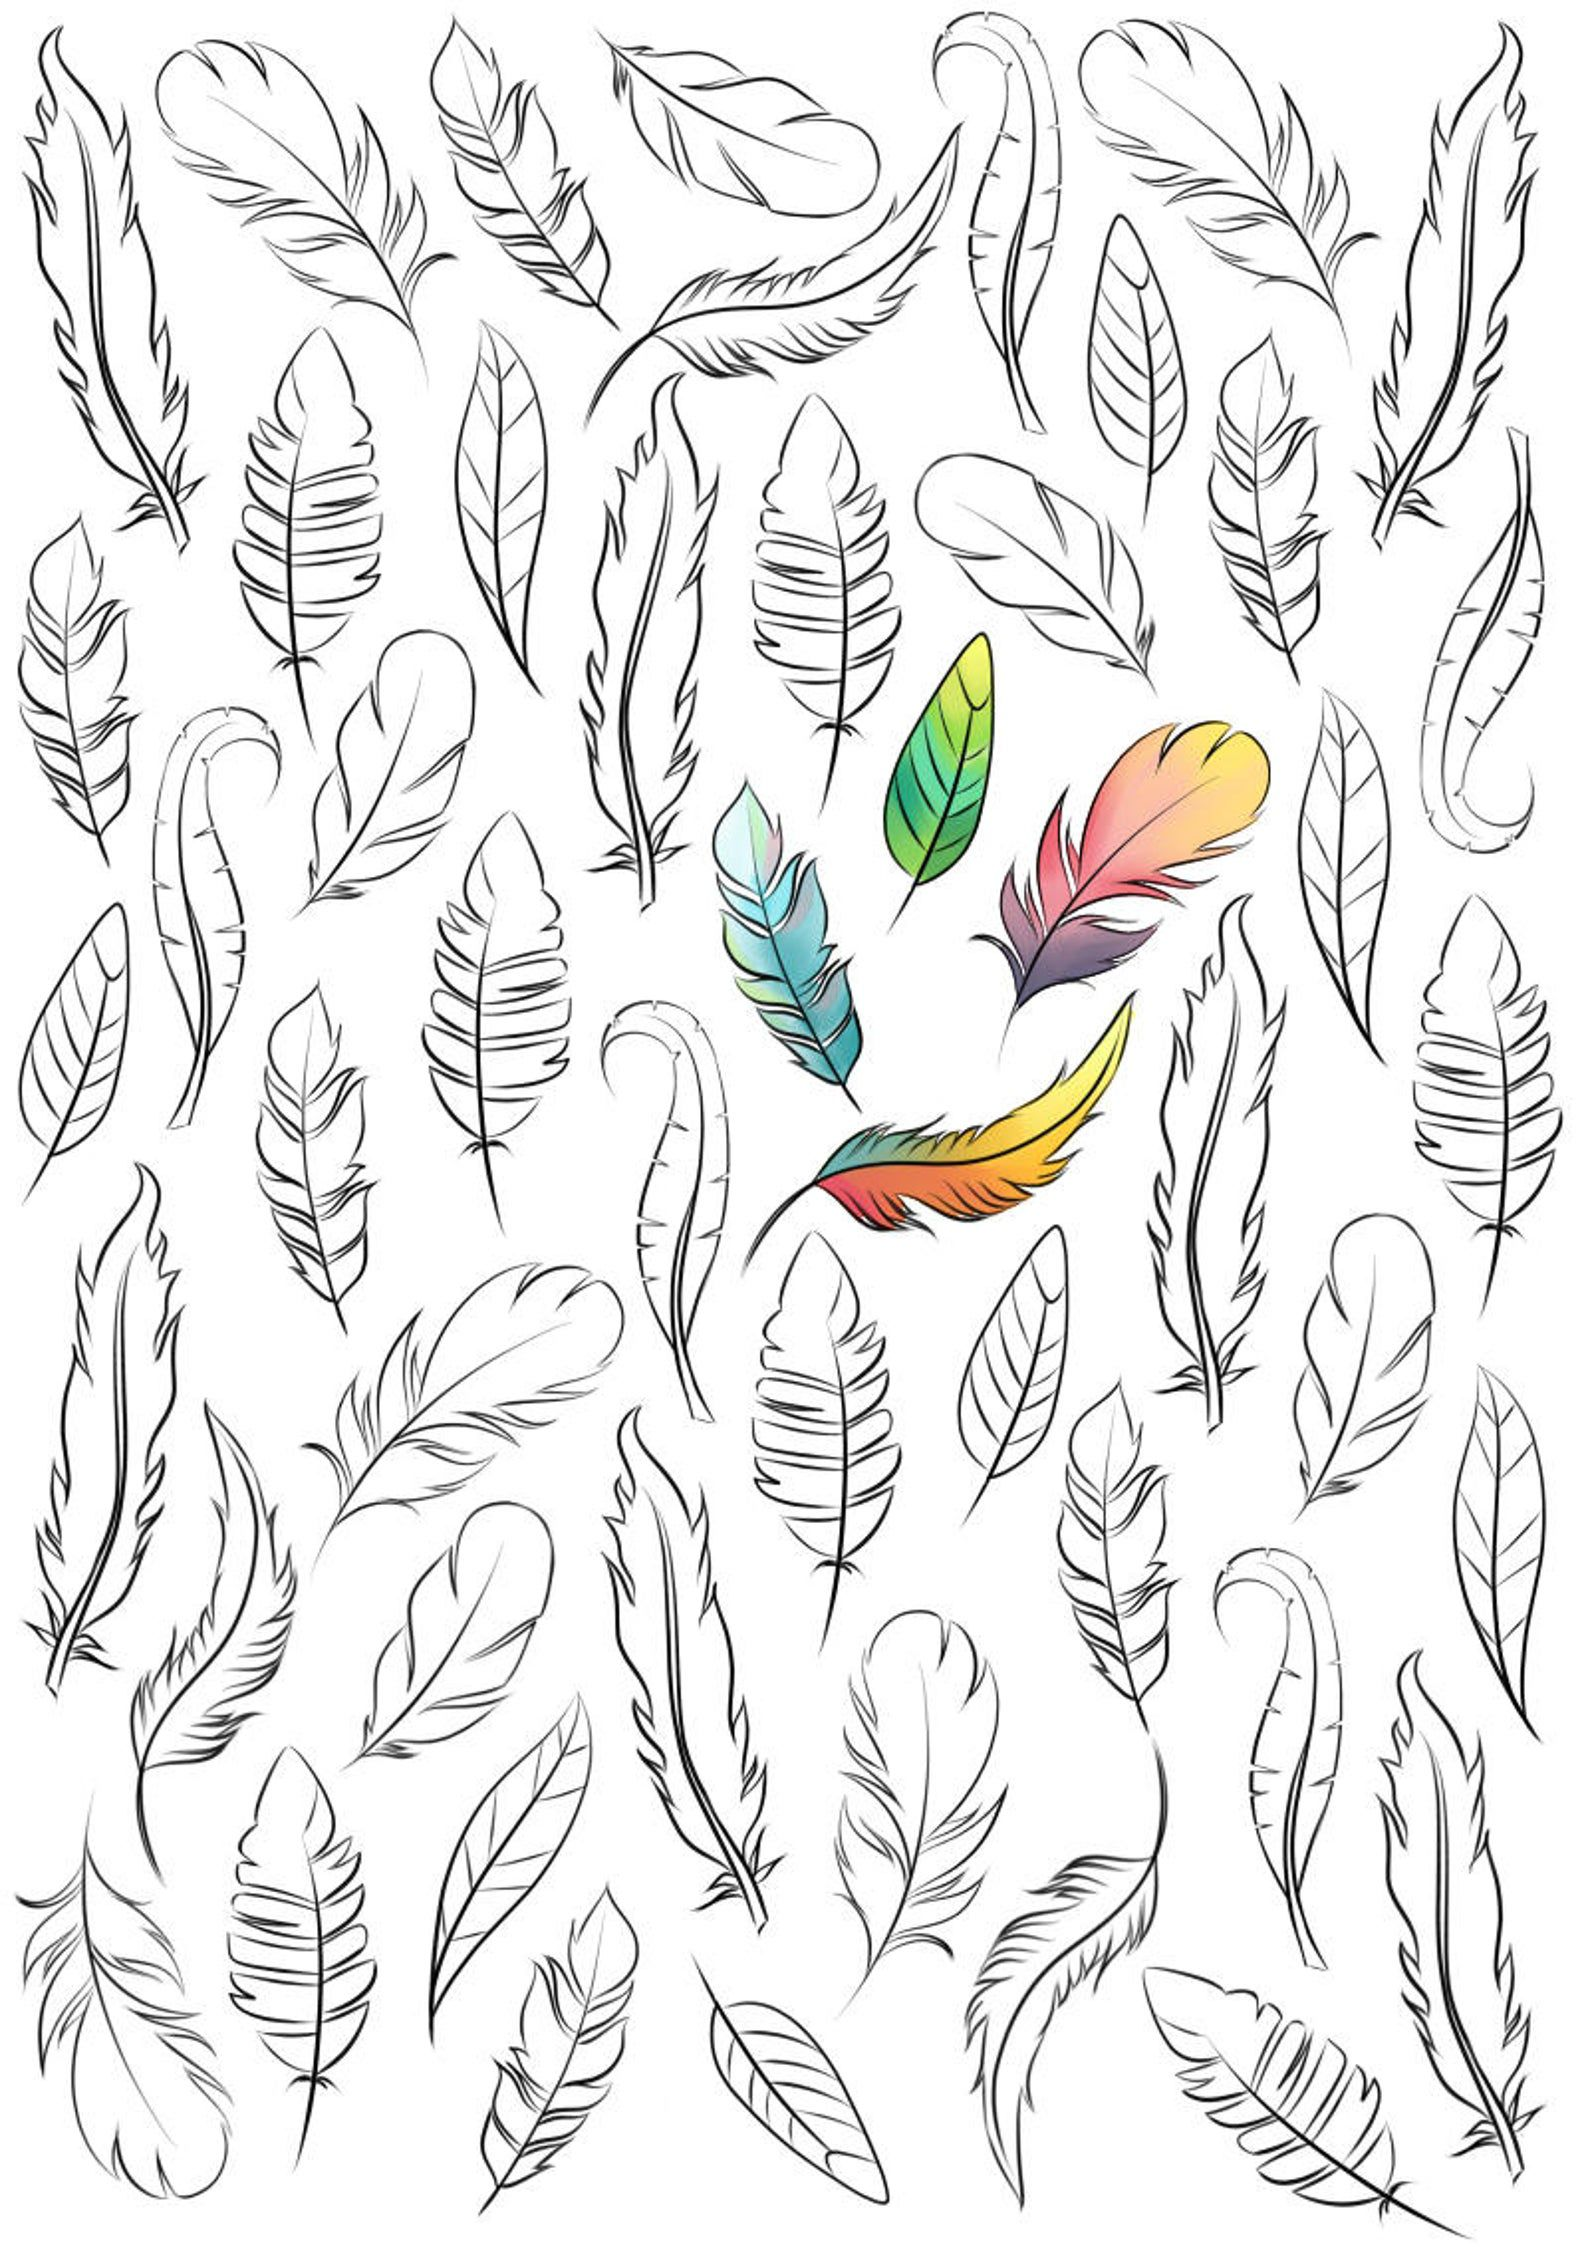 coloring book design of feathers